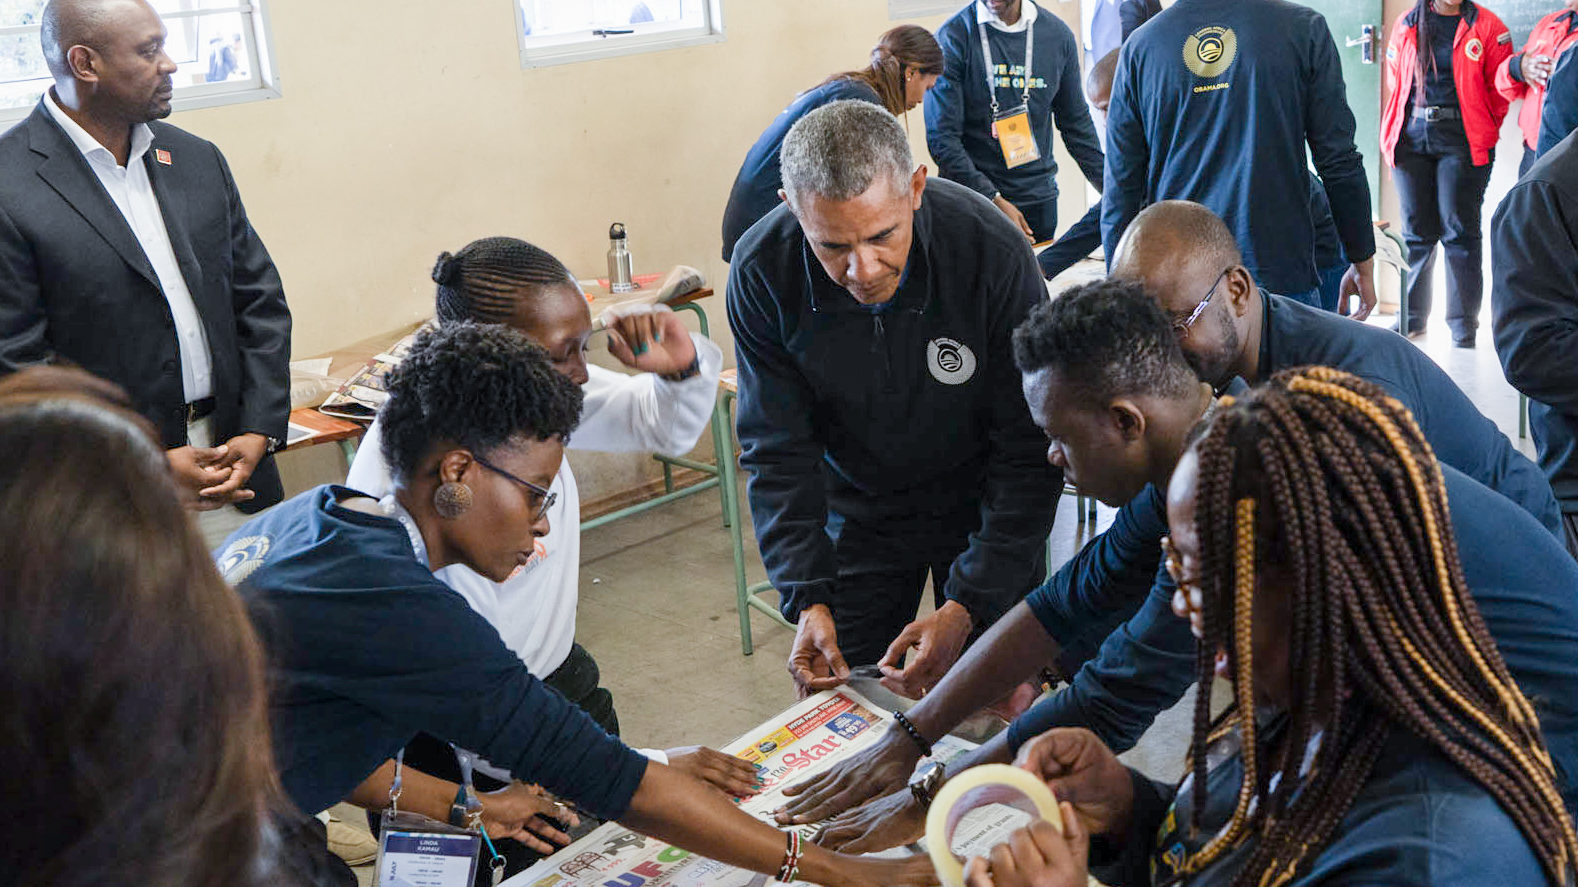 President Obama works with members of the first Leaders: Africa class at a service project in Johannesburg.